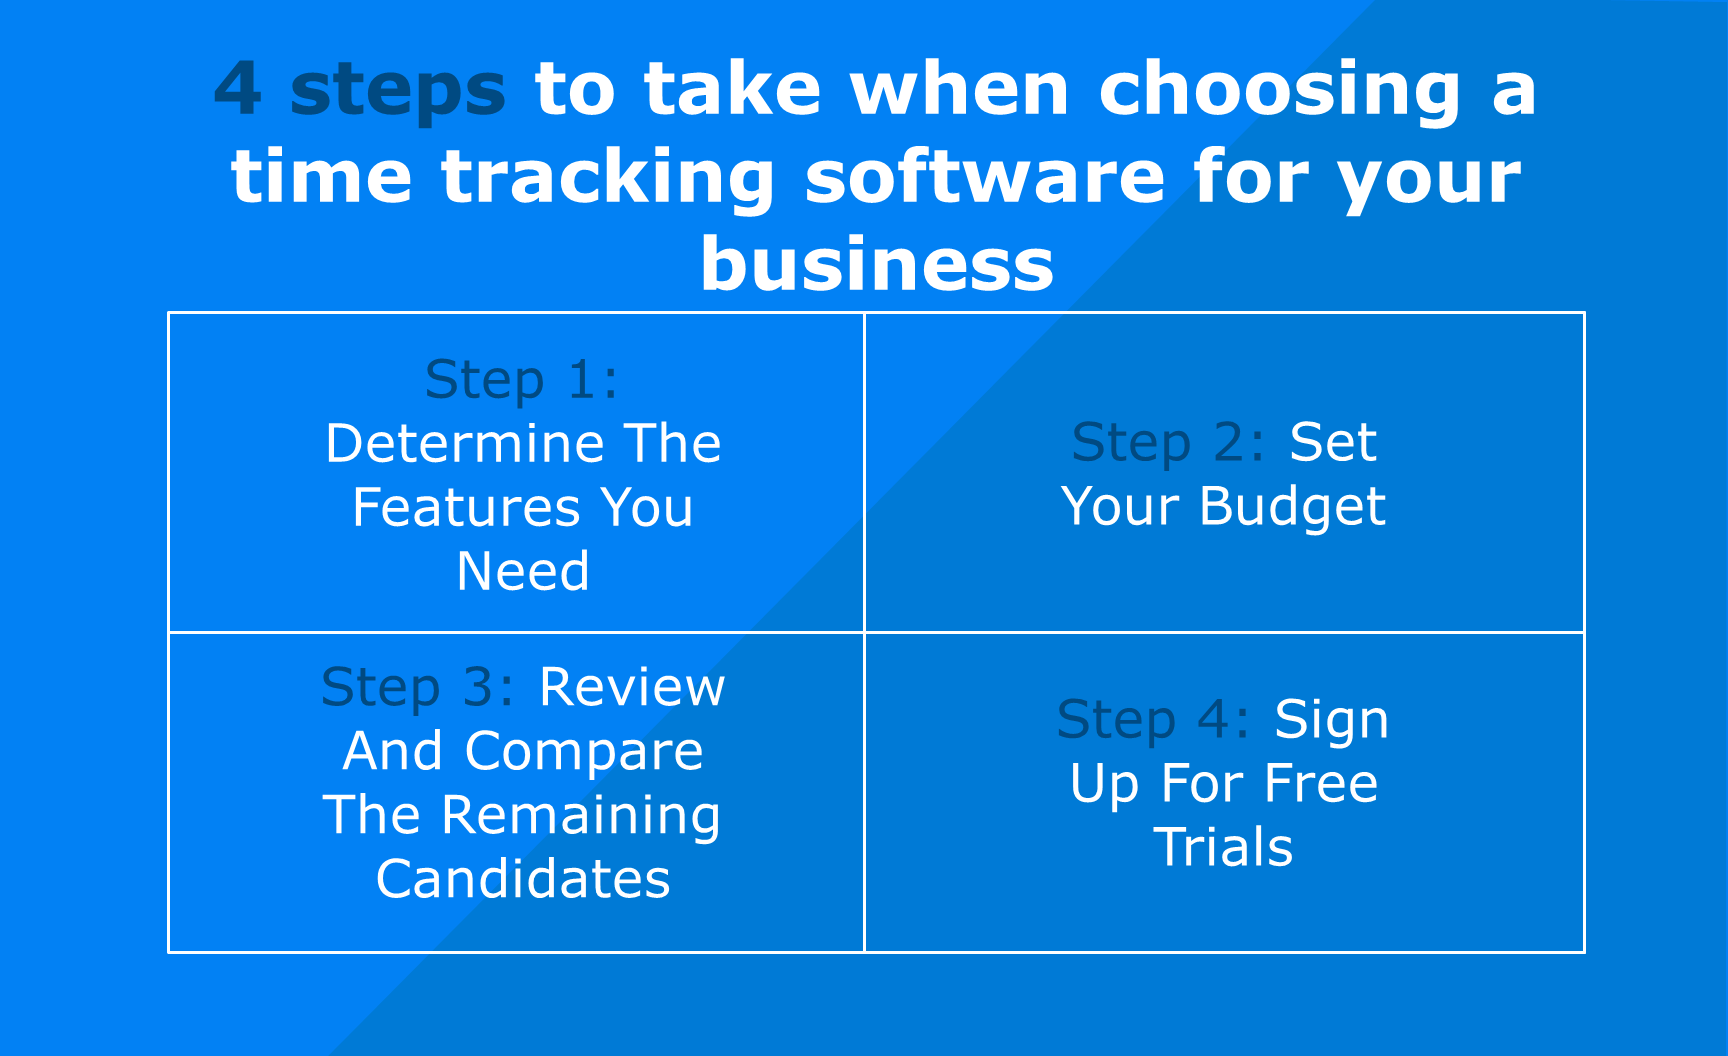 4 steps to take when choosing a time tracking software for your business